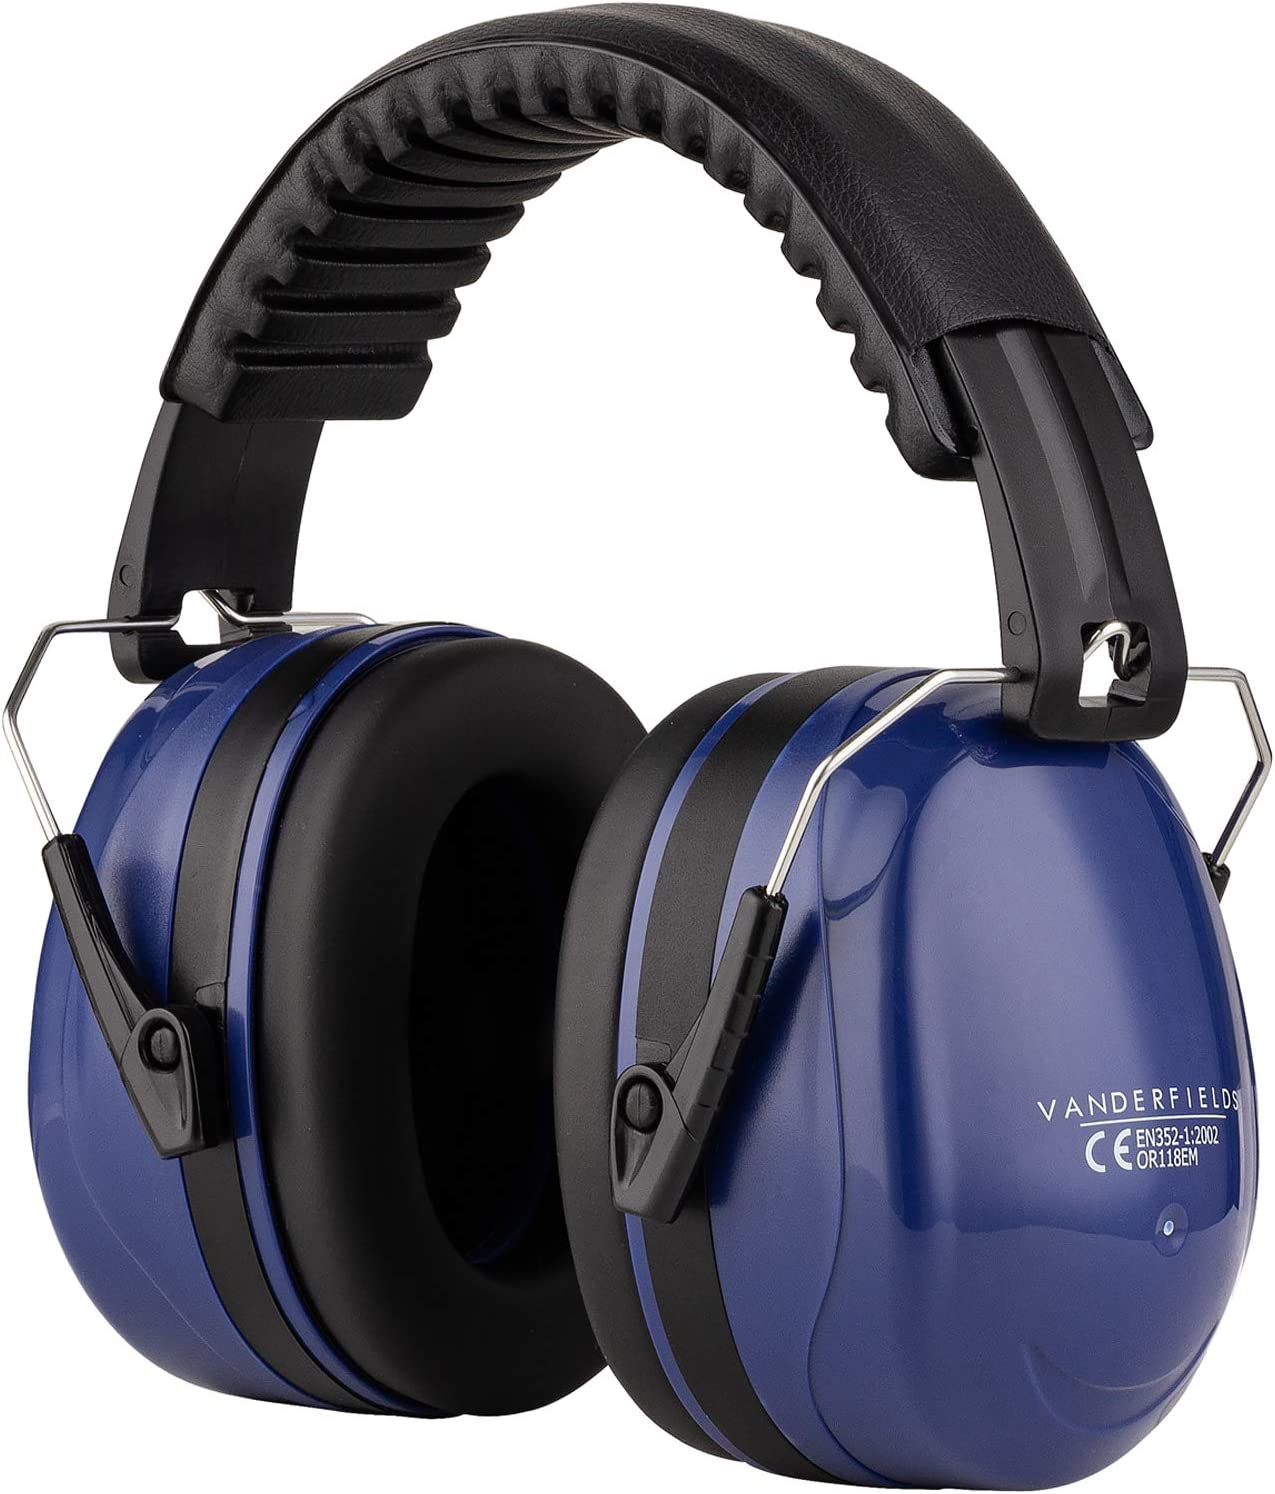 Ear Defenders Adult - Foldable Hearing Protection Ear Muffs Noise Cancelling - Perfect for DIYm Working, Shooting, Gardening - Adjustable Headband for Adults Men Women - 2 Years Warranty - Blue